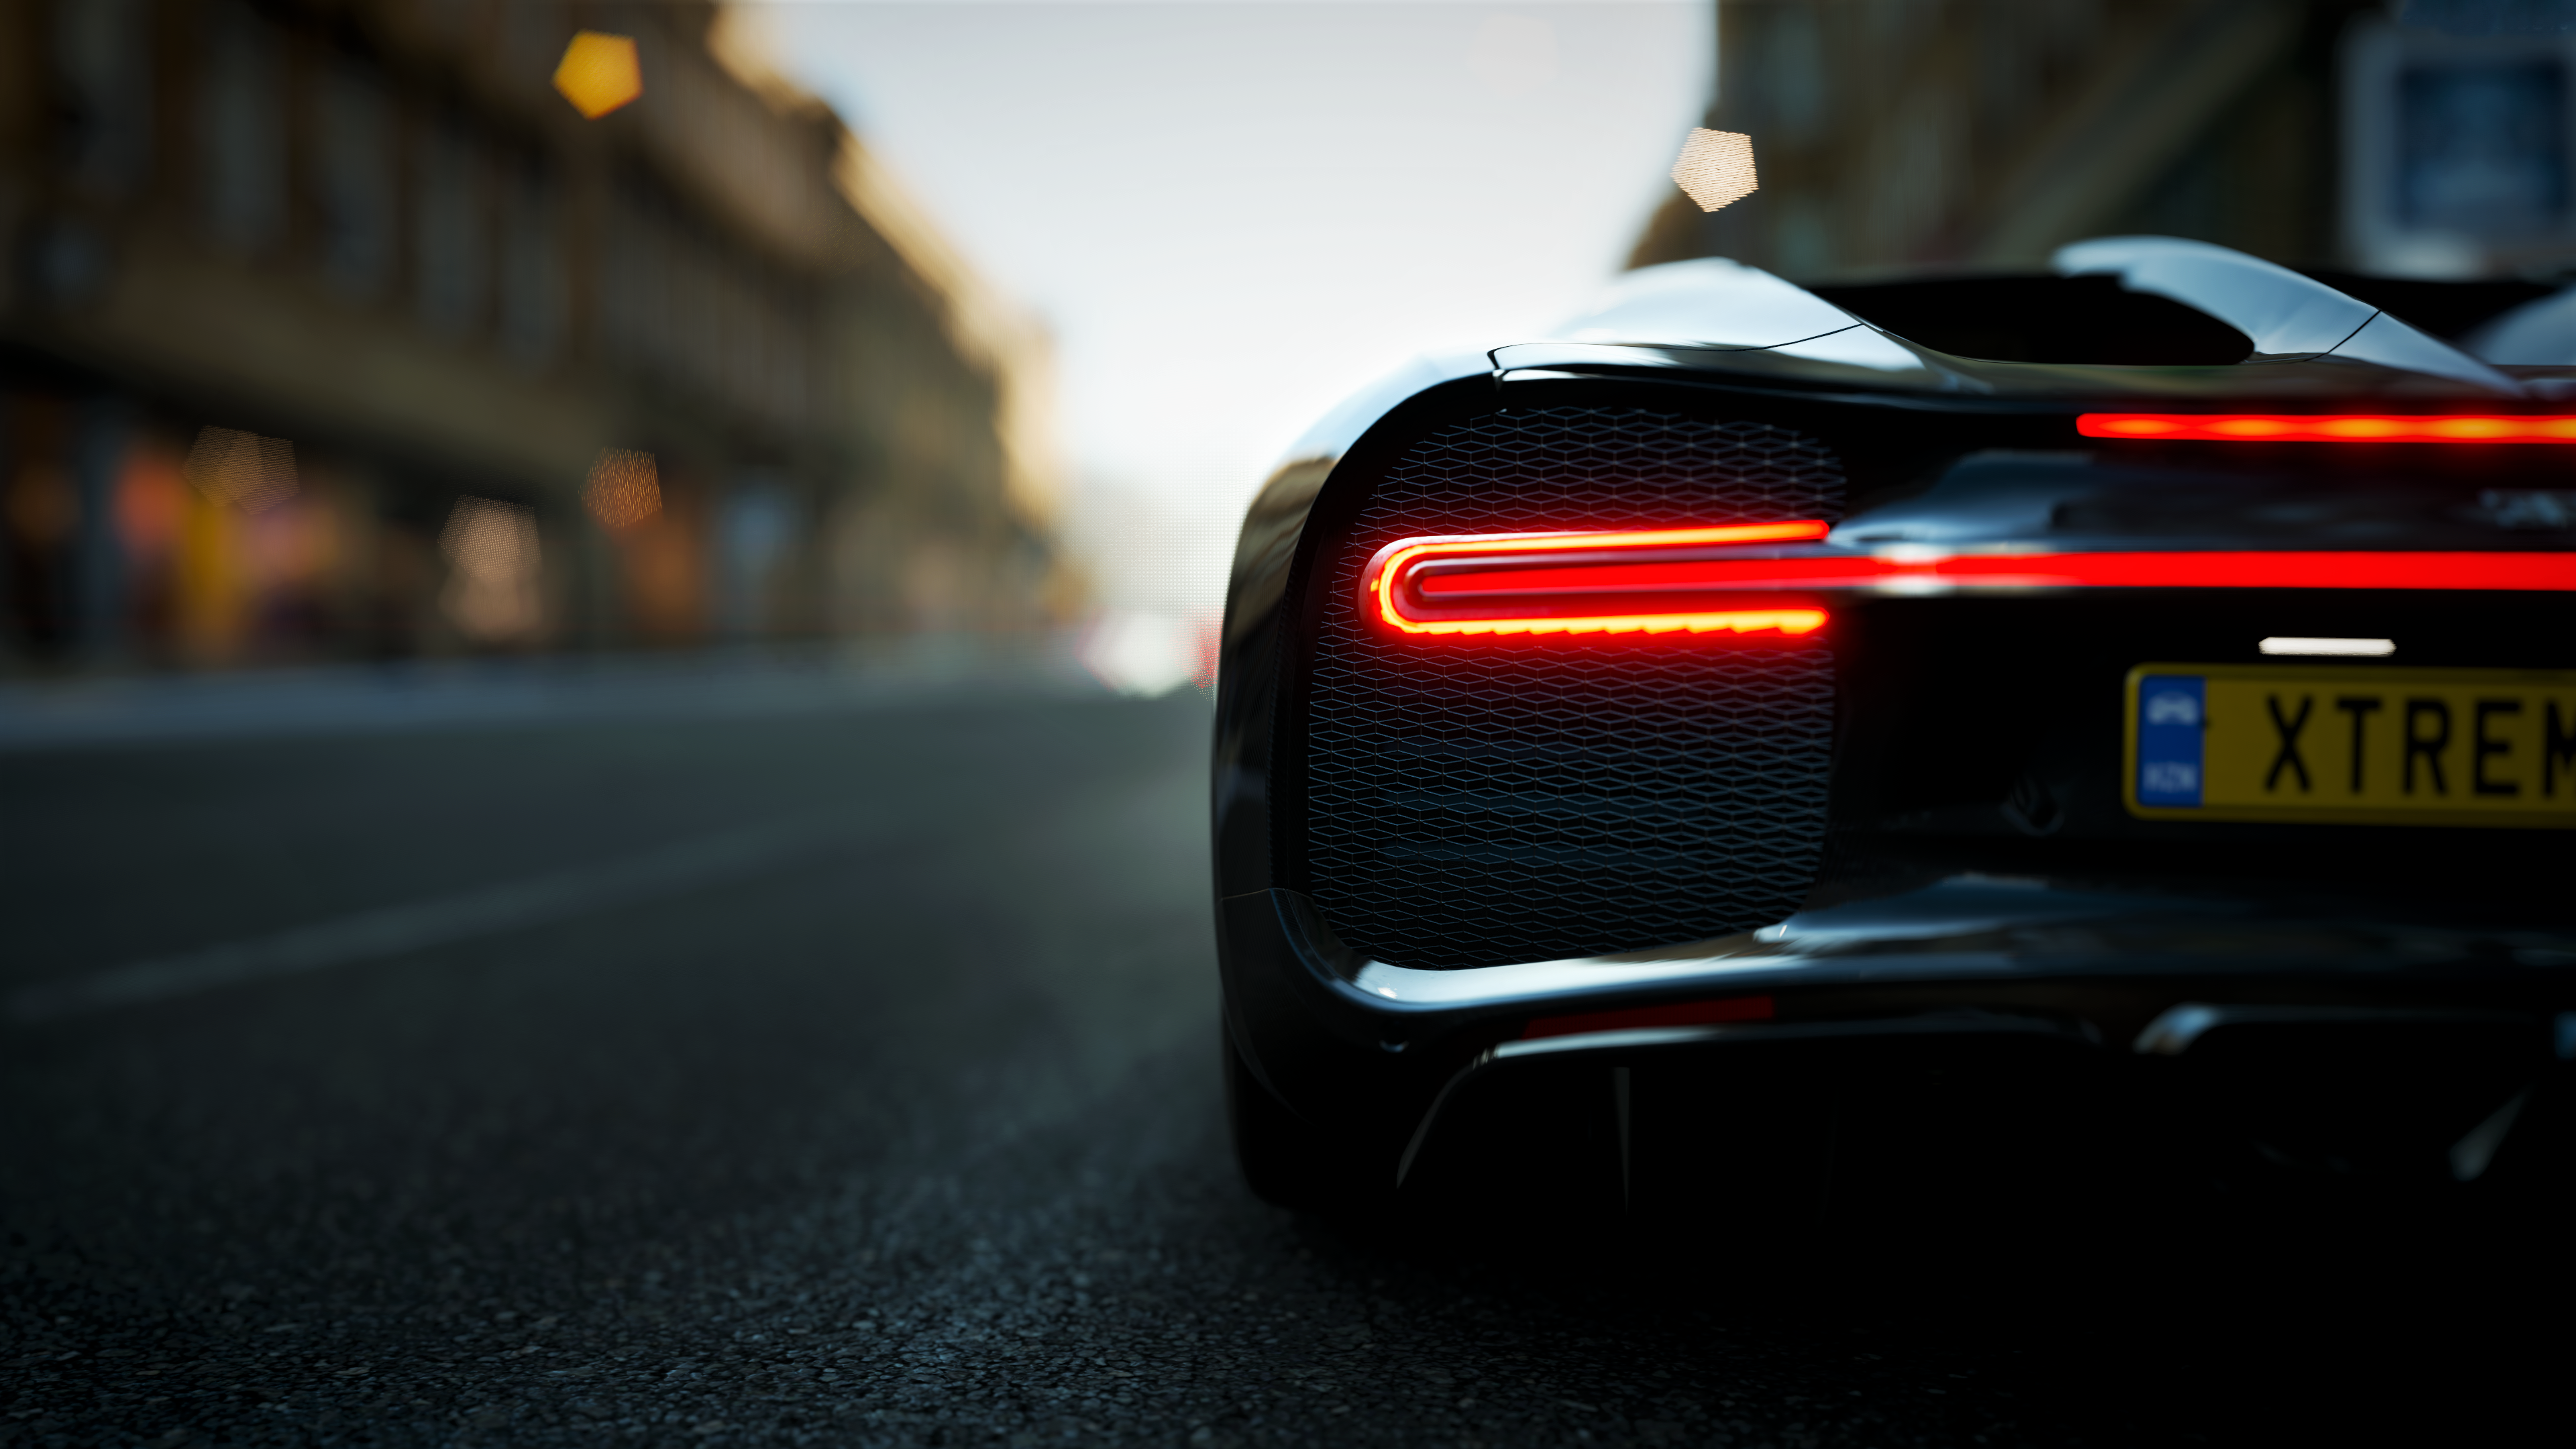 4k Clean Bugatti Chiron Wallpaper 3840x2160 Forza Horizon 4 In 2020 Computer Wallpaper Desktop Wallpapers Laptop Wallpaper Desktop Wallpapers Bugatti Wallpapers